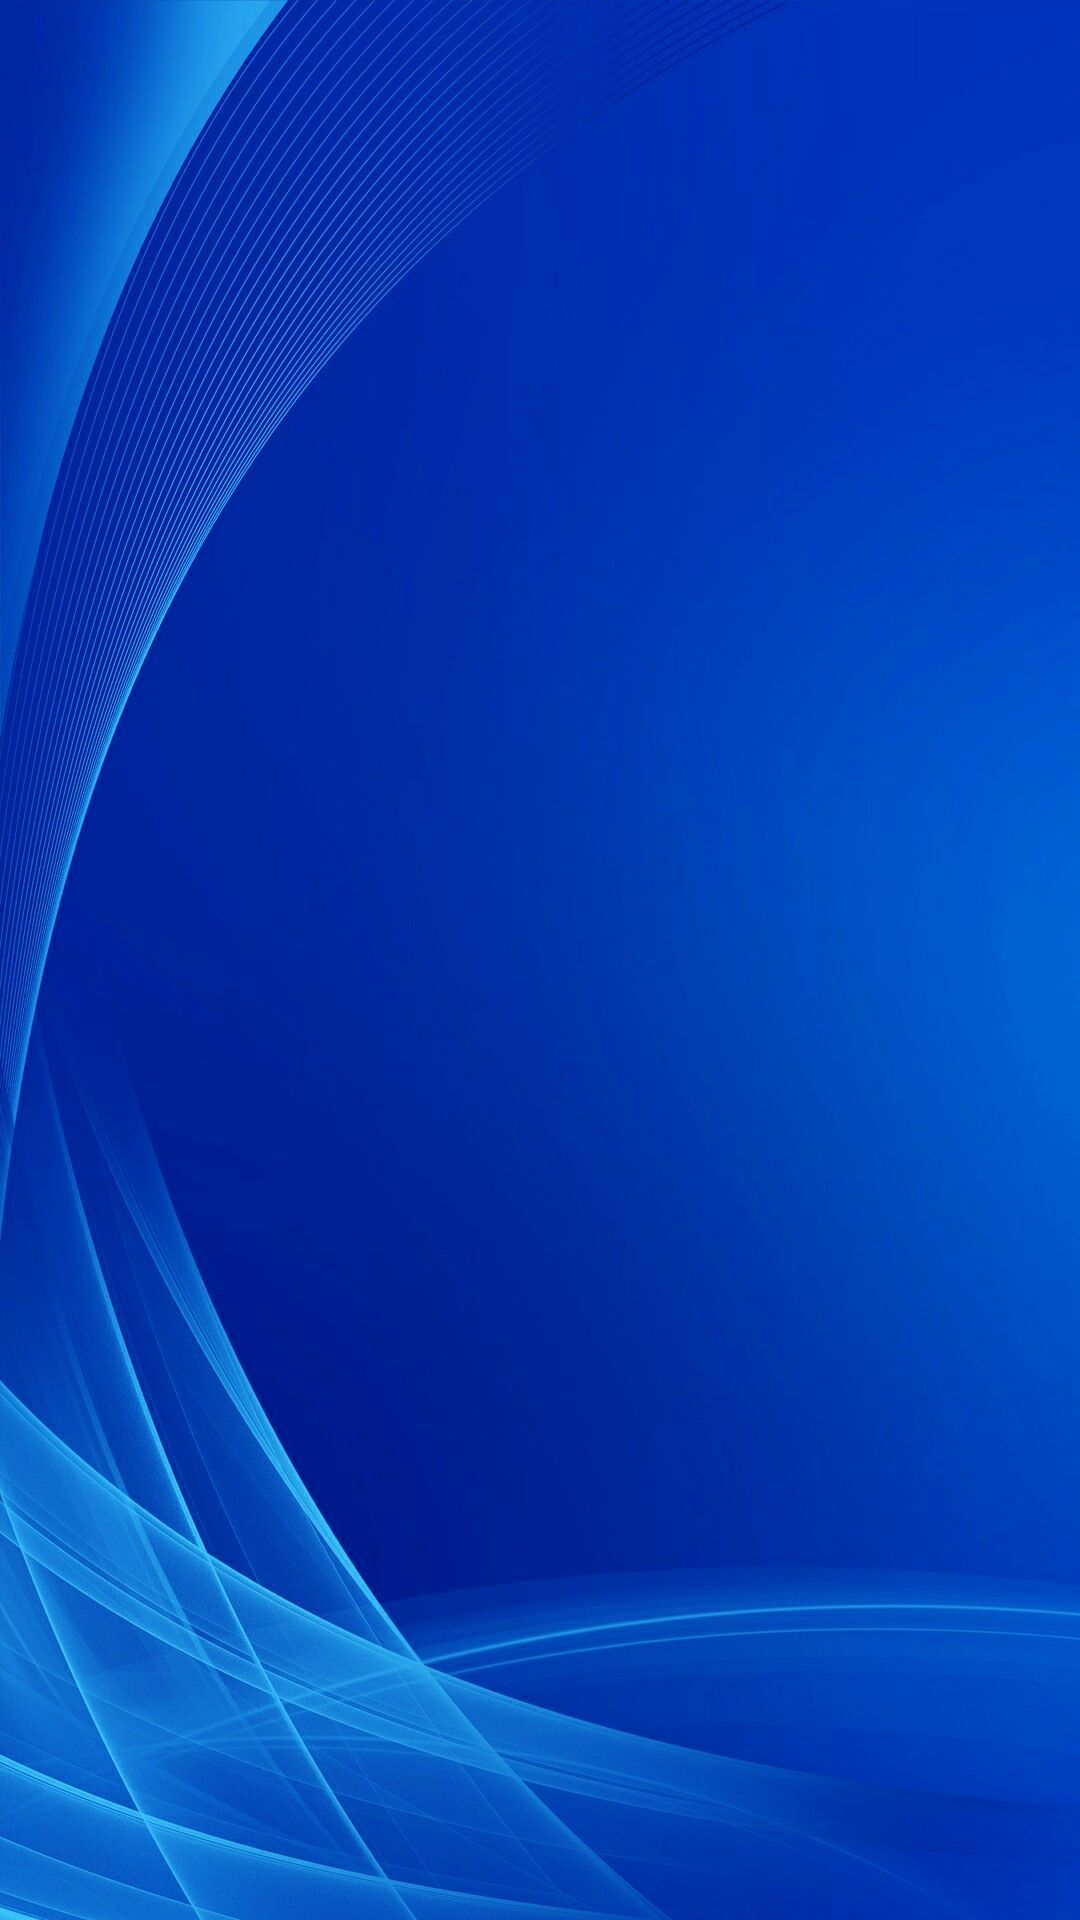 Get Cool Blue Background for Android Phone Today Blue